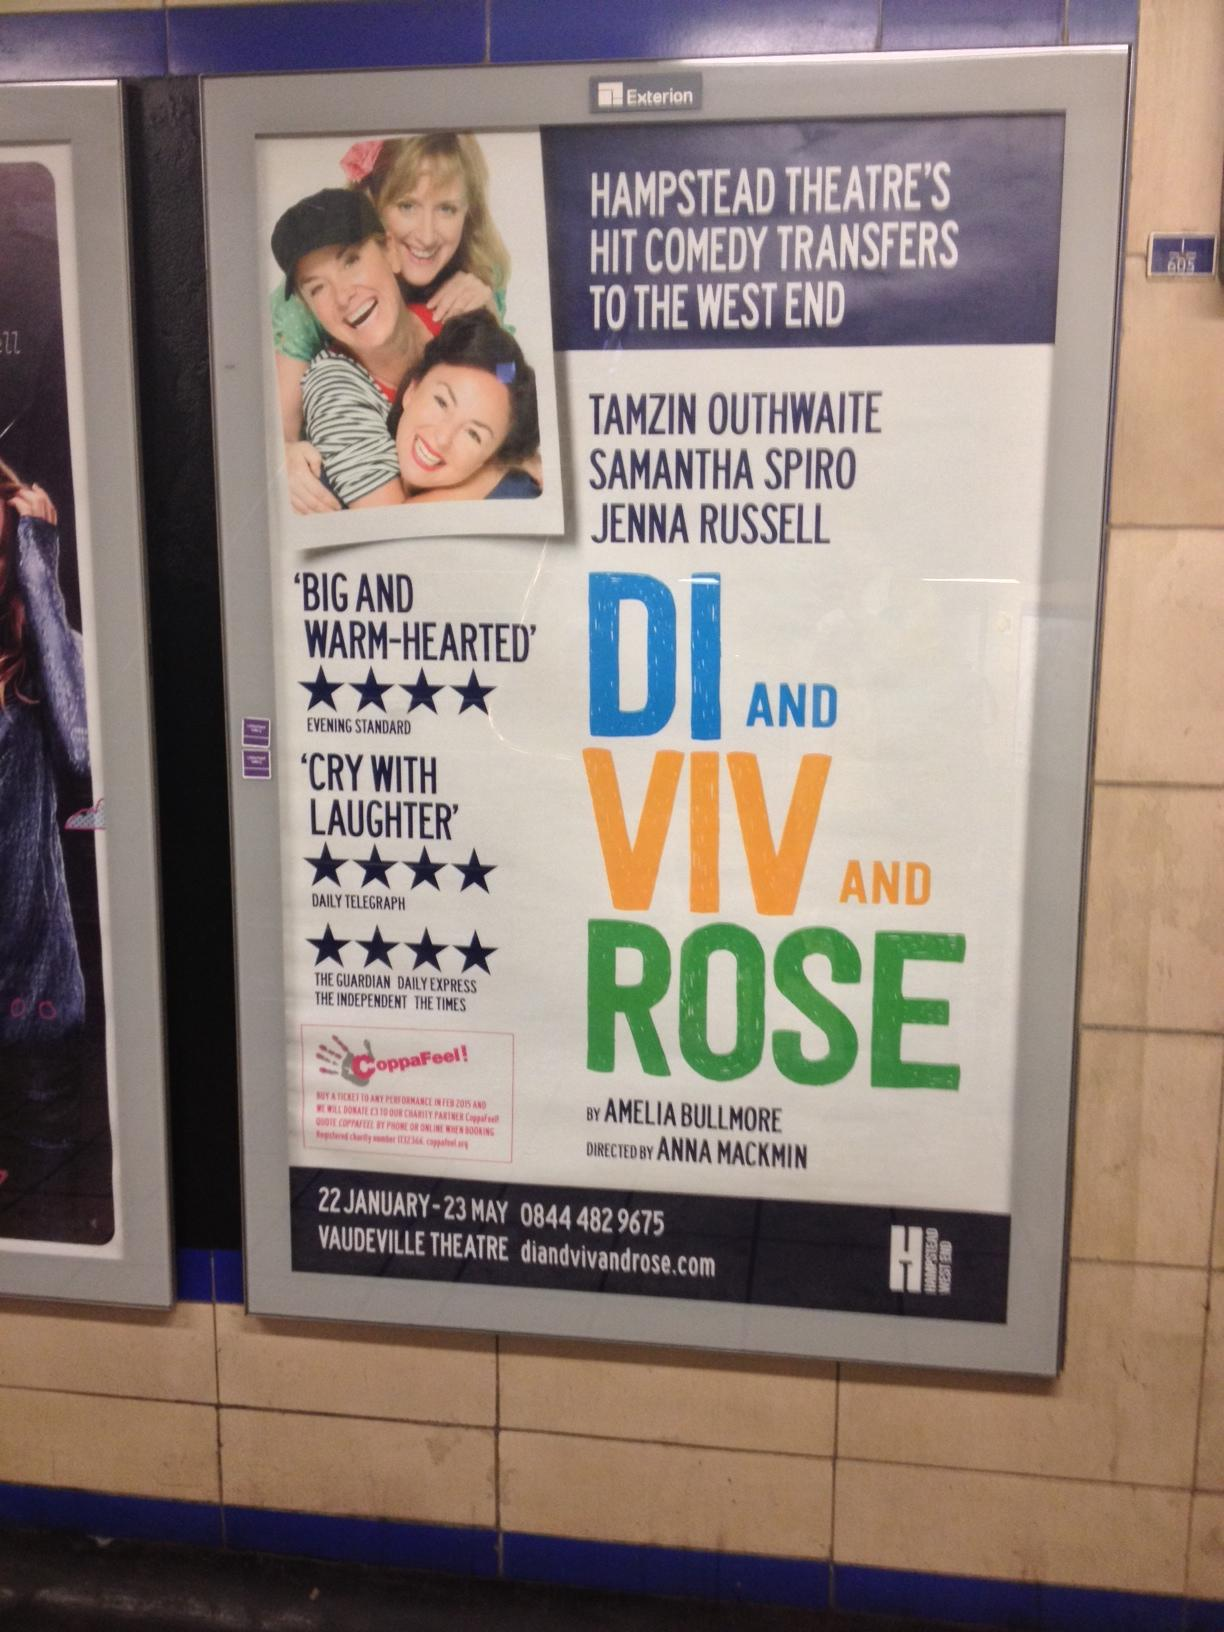 RT @DiVivandRose: We're on the tube! Can you guess where we are? Clue: It's in East London + you can walk to a famous market nearby. http:/…